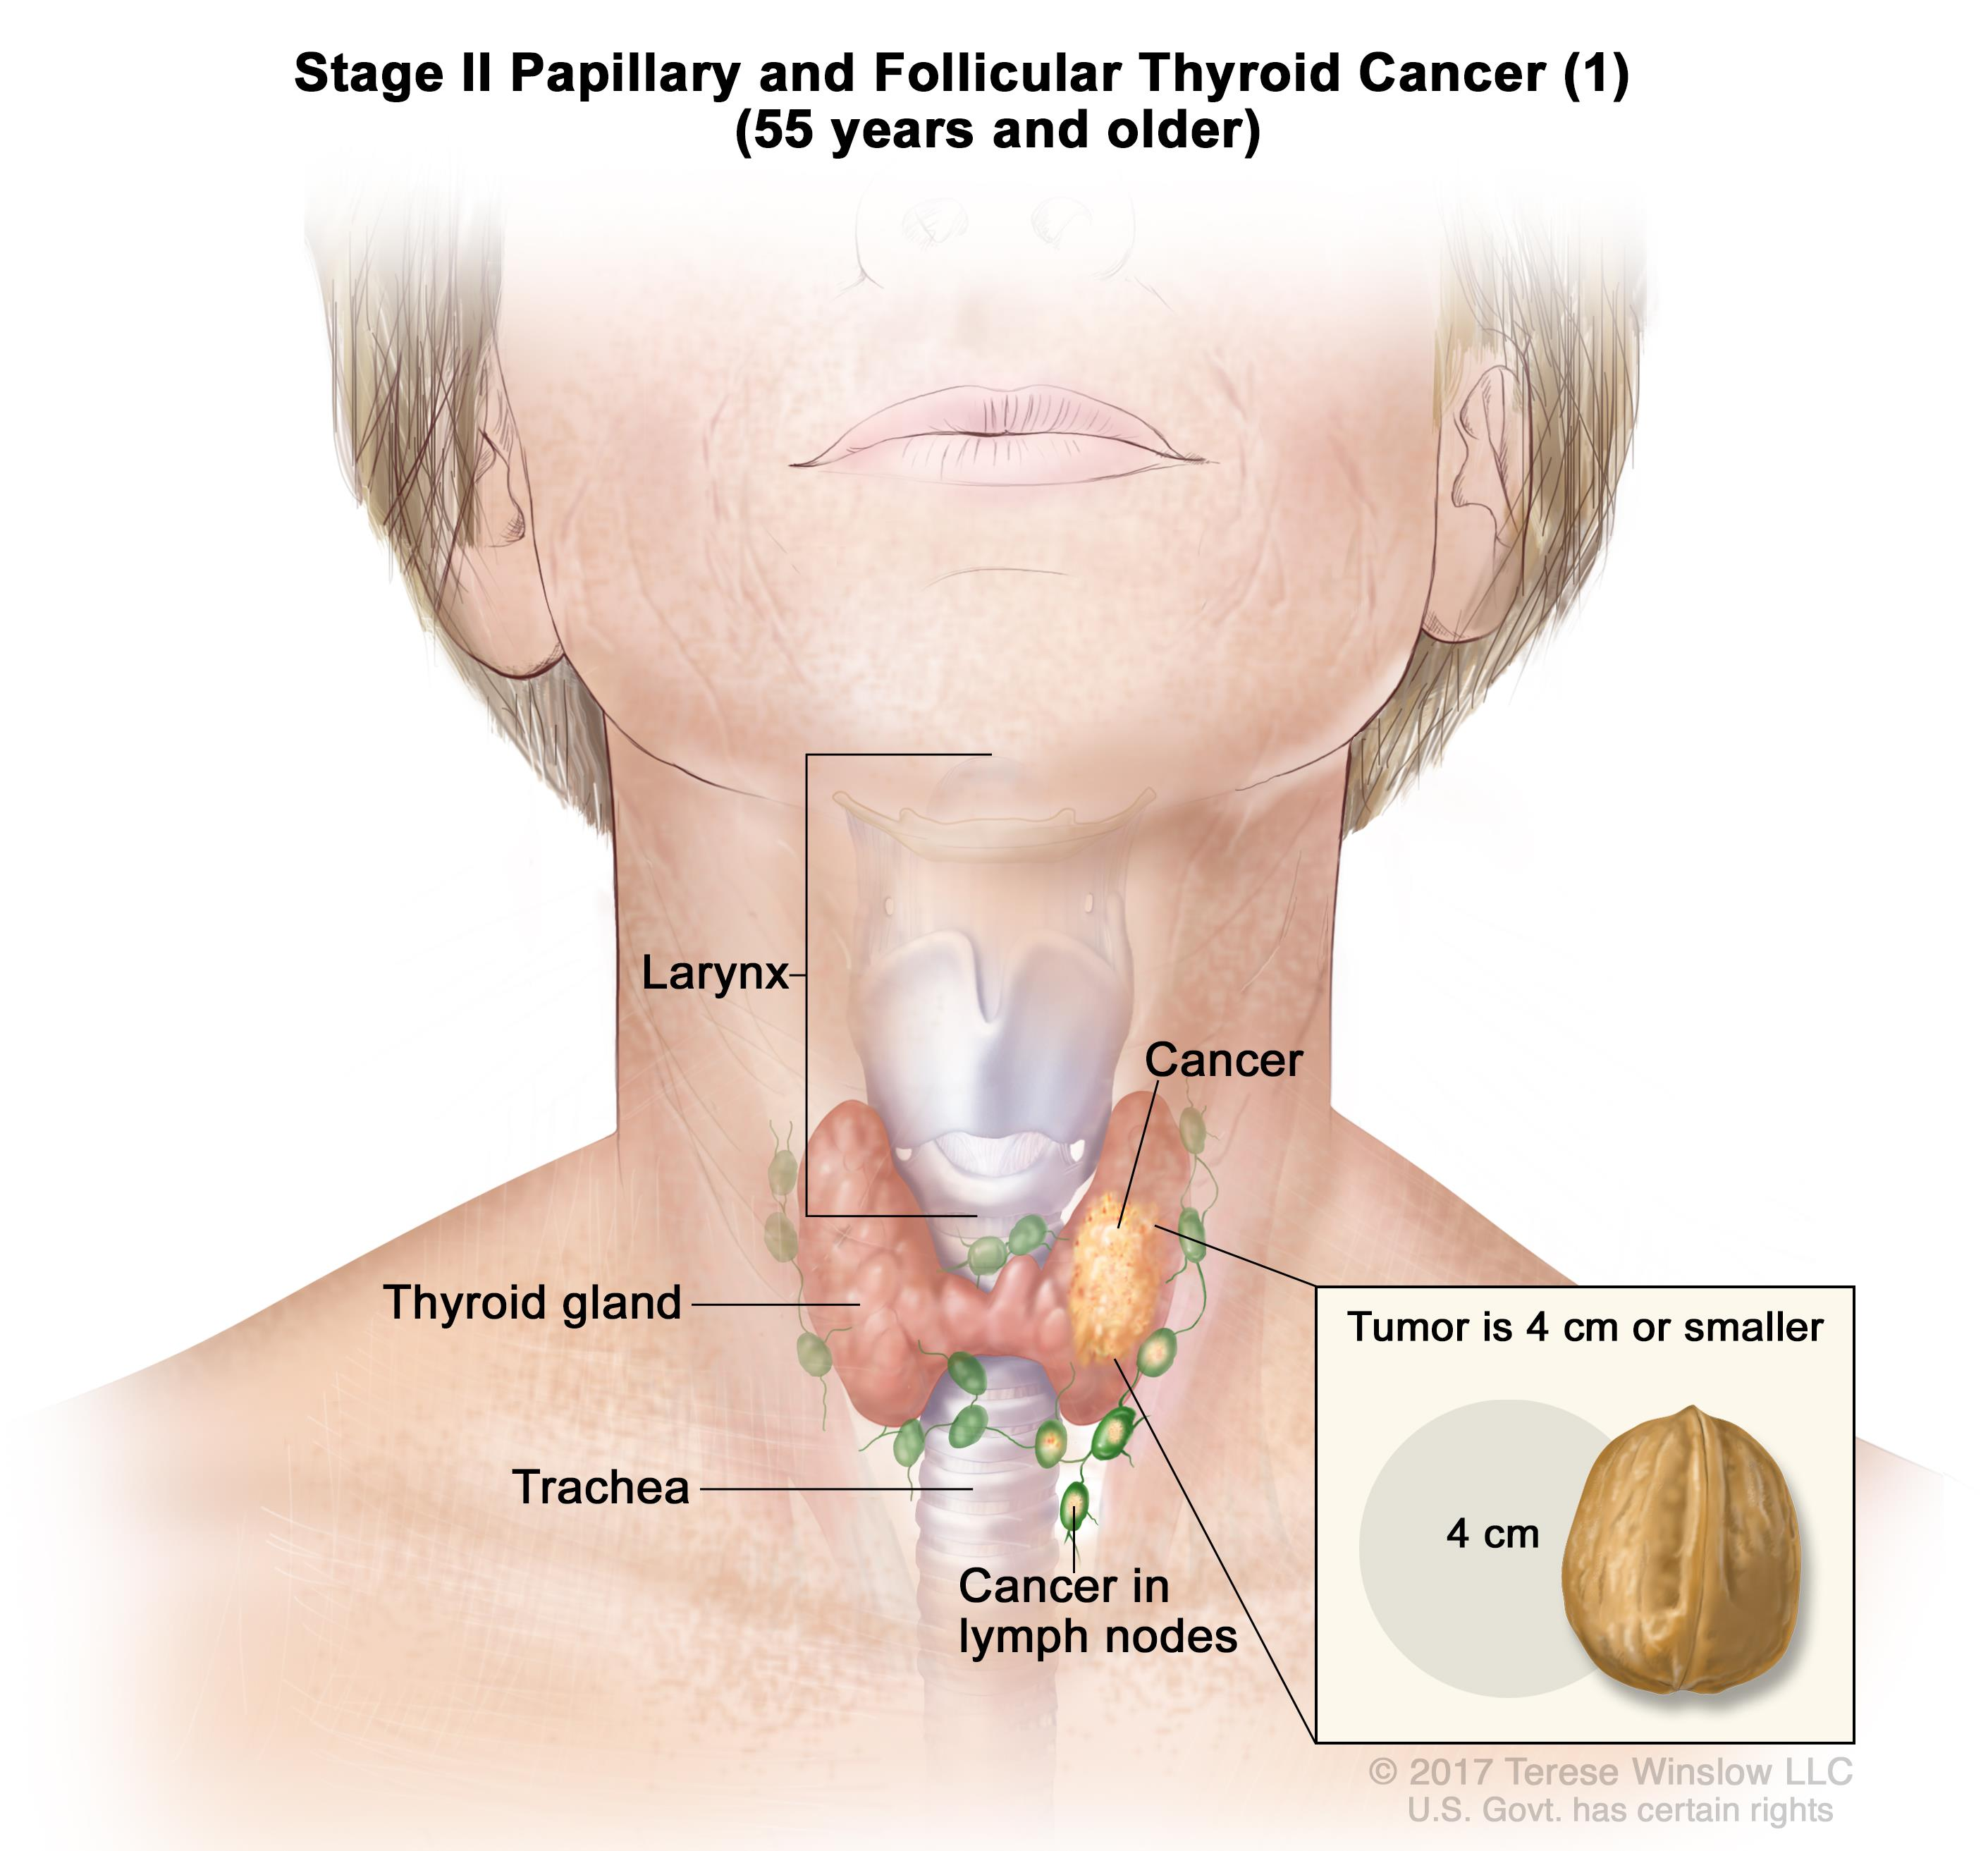 Stage II papillary and follicular thyroid cancer (1) in patients 55 years  and older. Cancer is found in the thyroid and the tumor is 4 centimeters or  ...